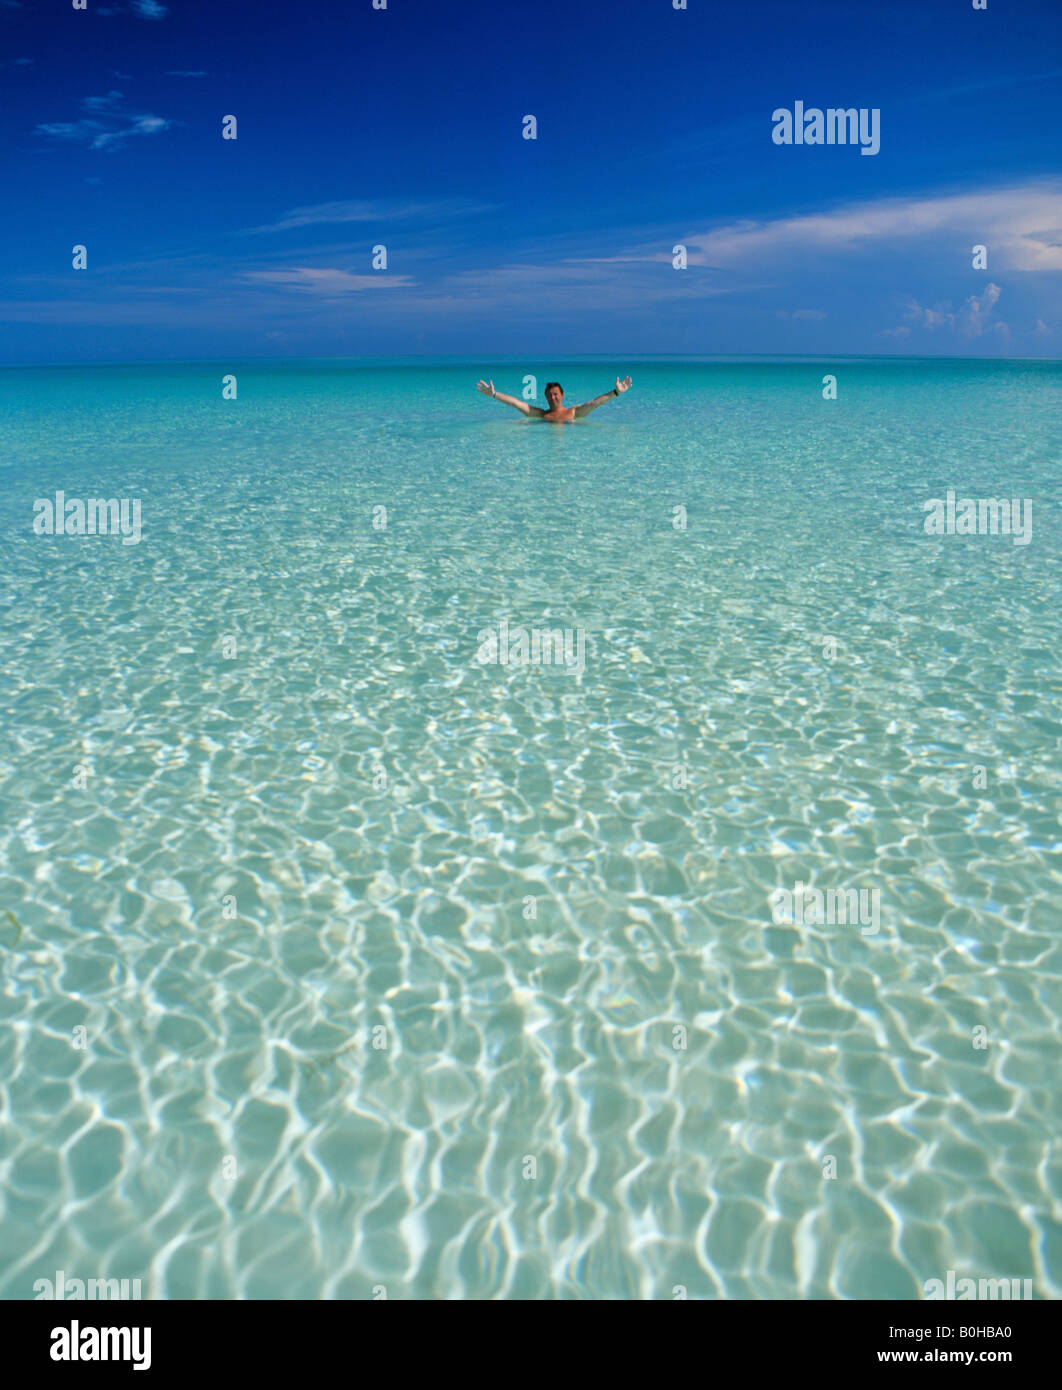 crystal clear ocean water man standing in shallow water